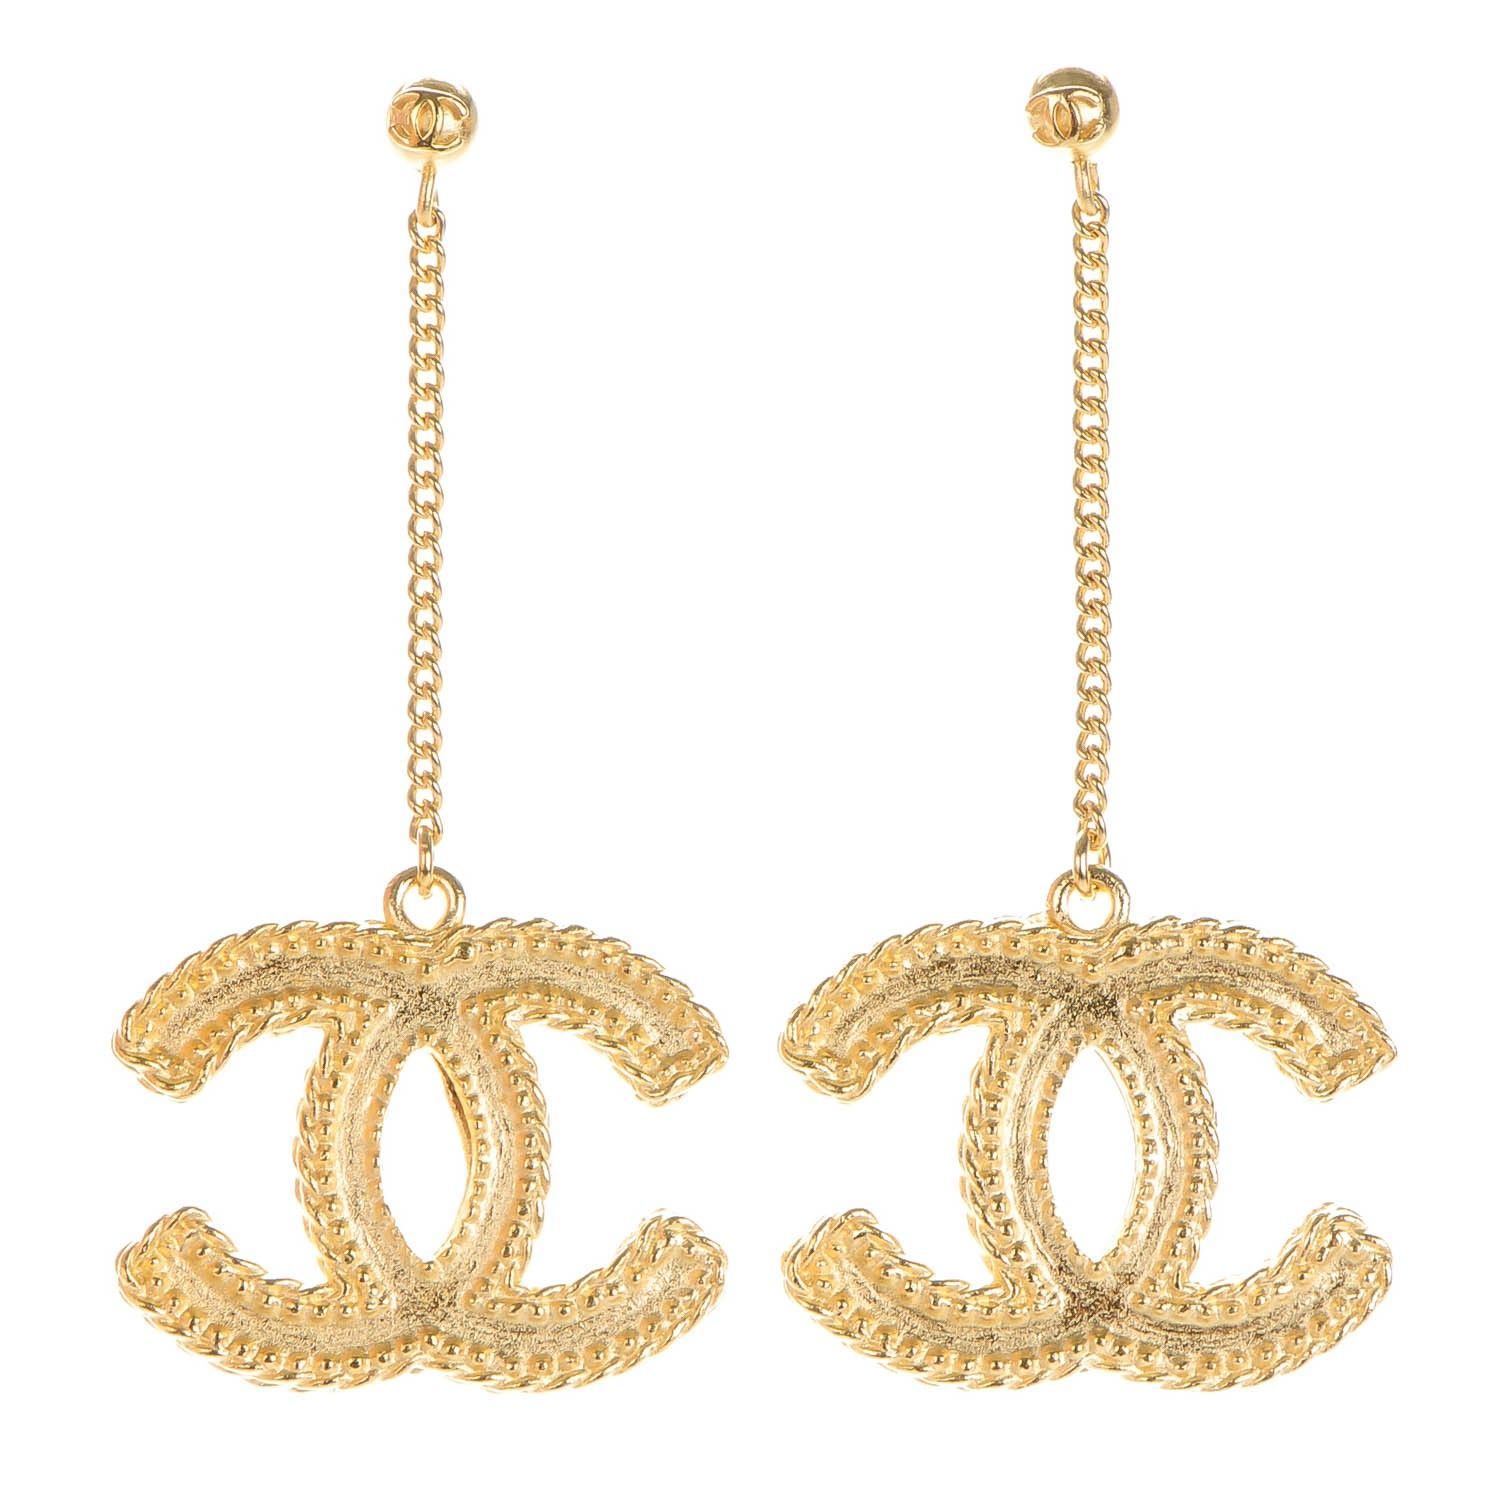 d90666c4a1cb0b This is an authentic pair of CHANEL CC Drop Earrings in Matte Gold. These  stylish